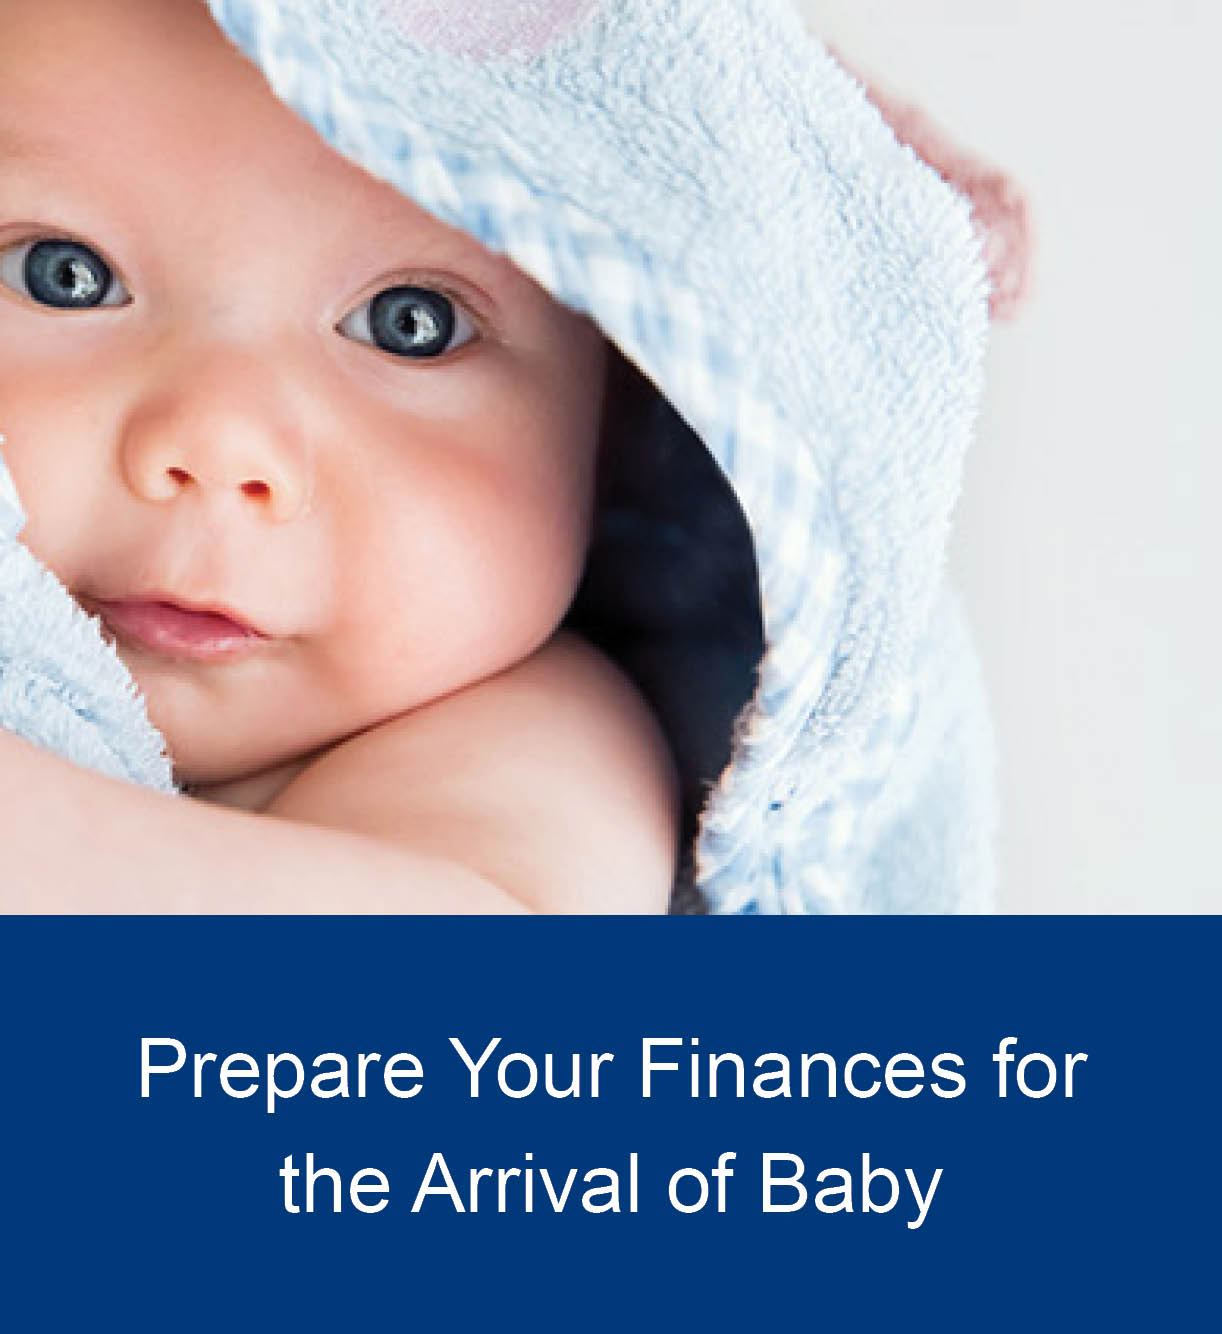 Prepare Finances for Baby